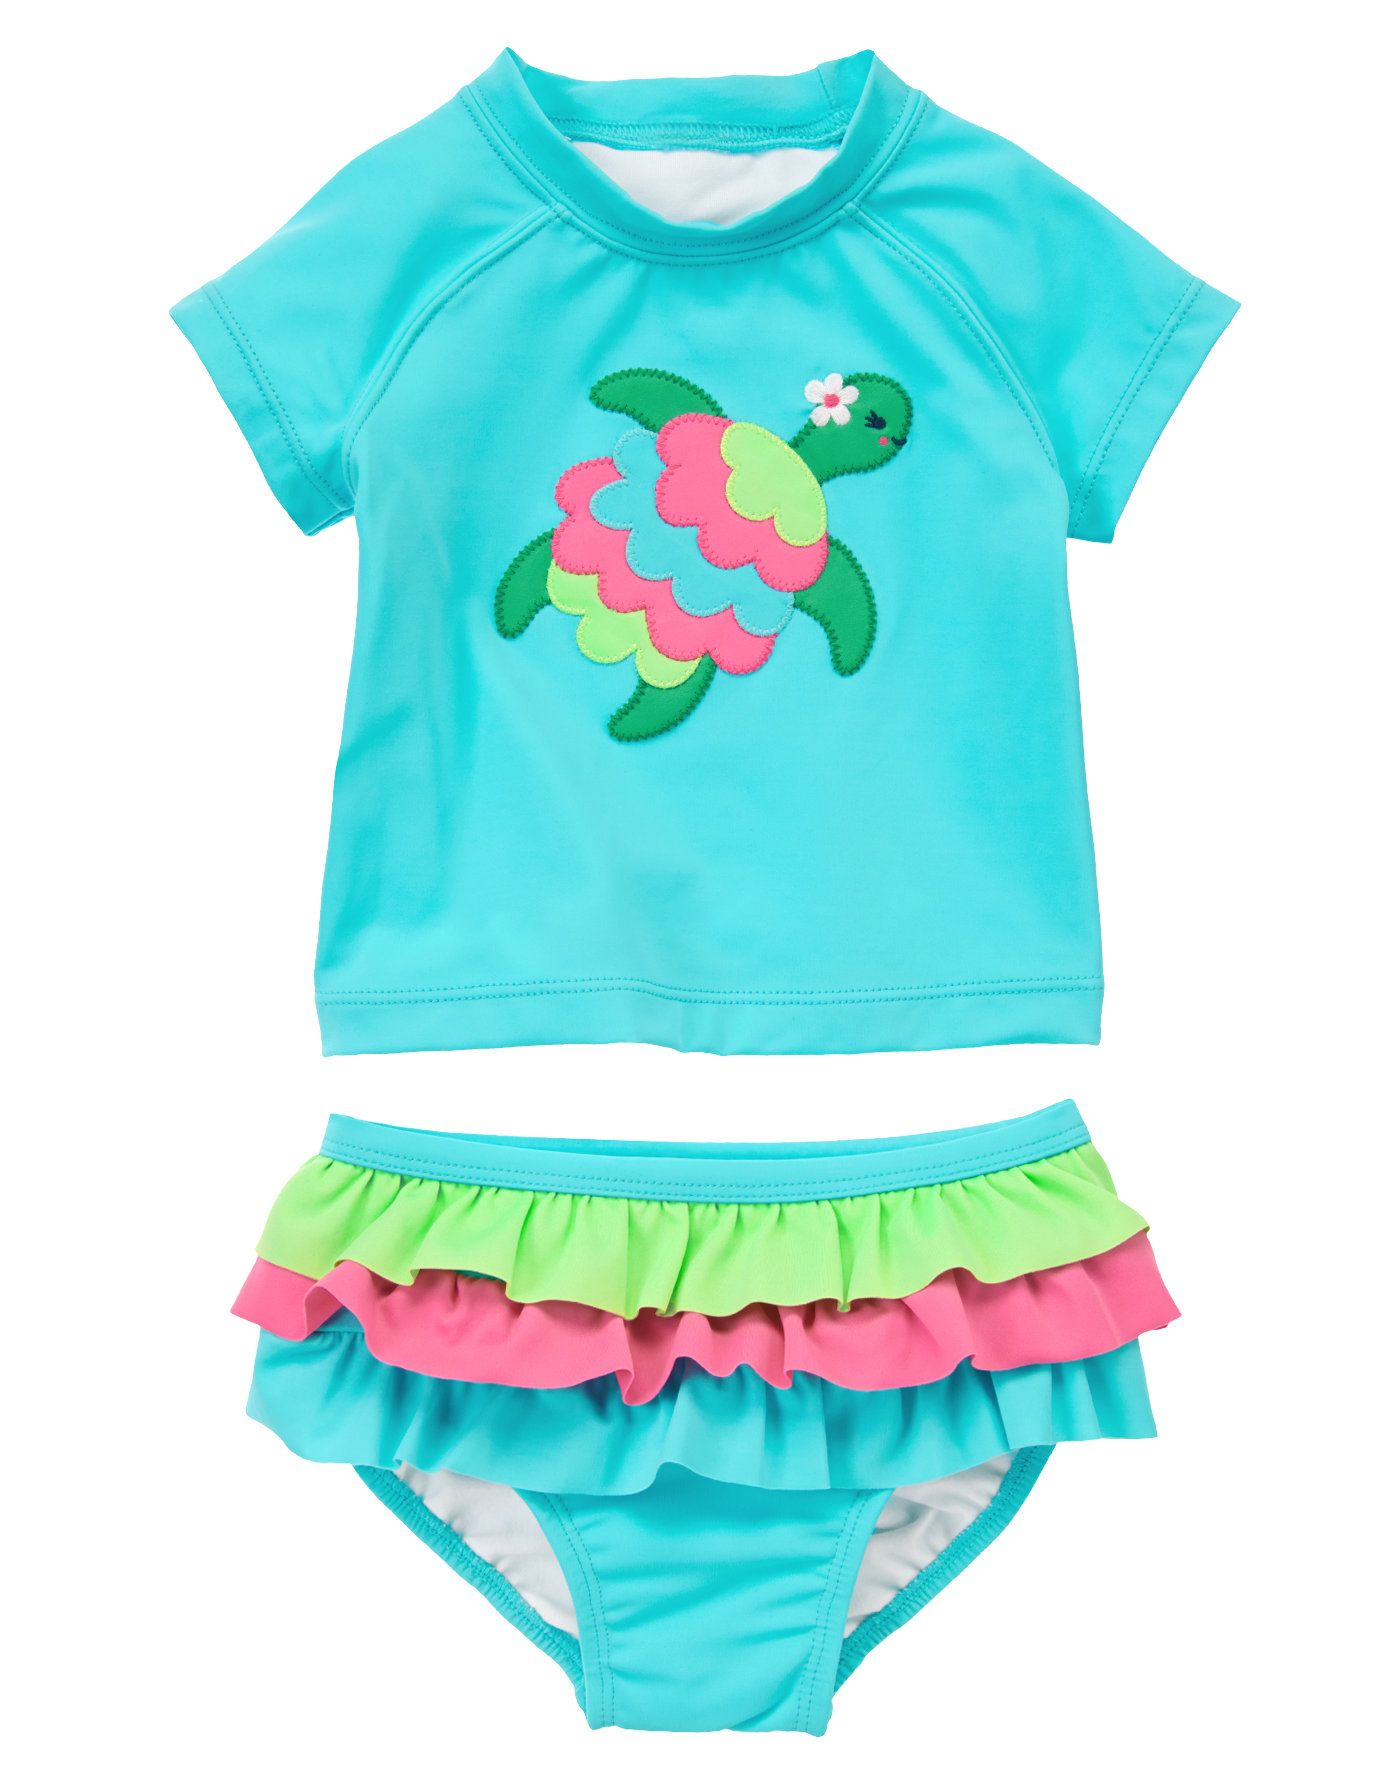 ffaee4f0350e89 Turtle Ruffle Rash Guard Set at Gymboree Collection Name  Swim Shop (March  2014)